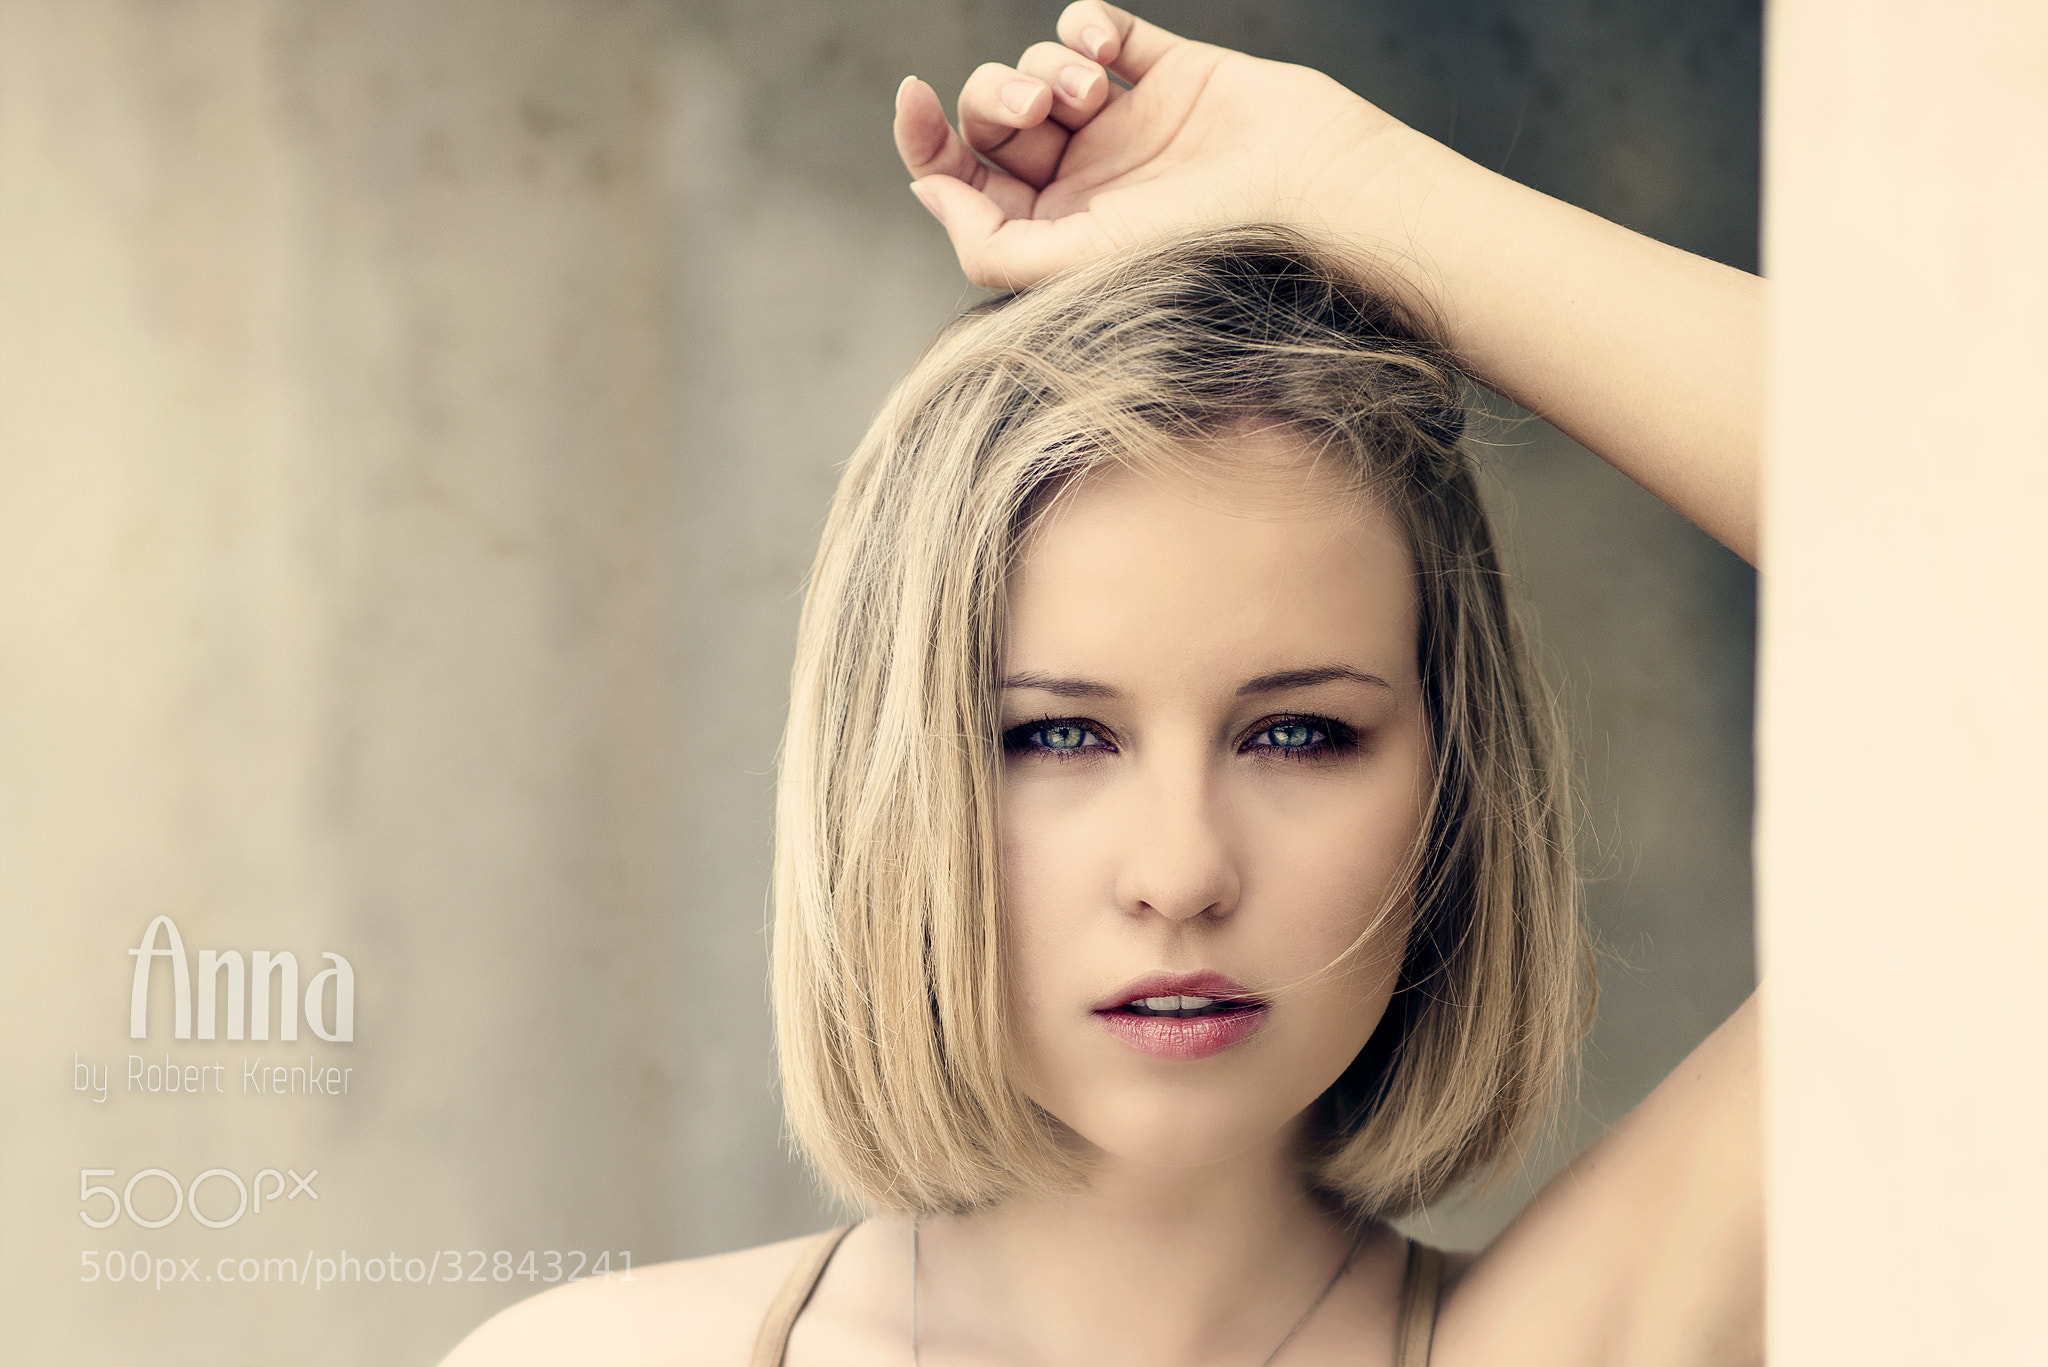 Photograph Anna by Robert Krenker on 500px